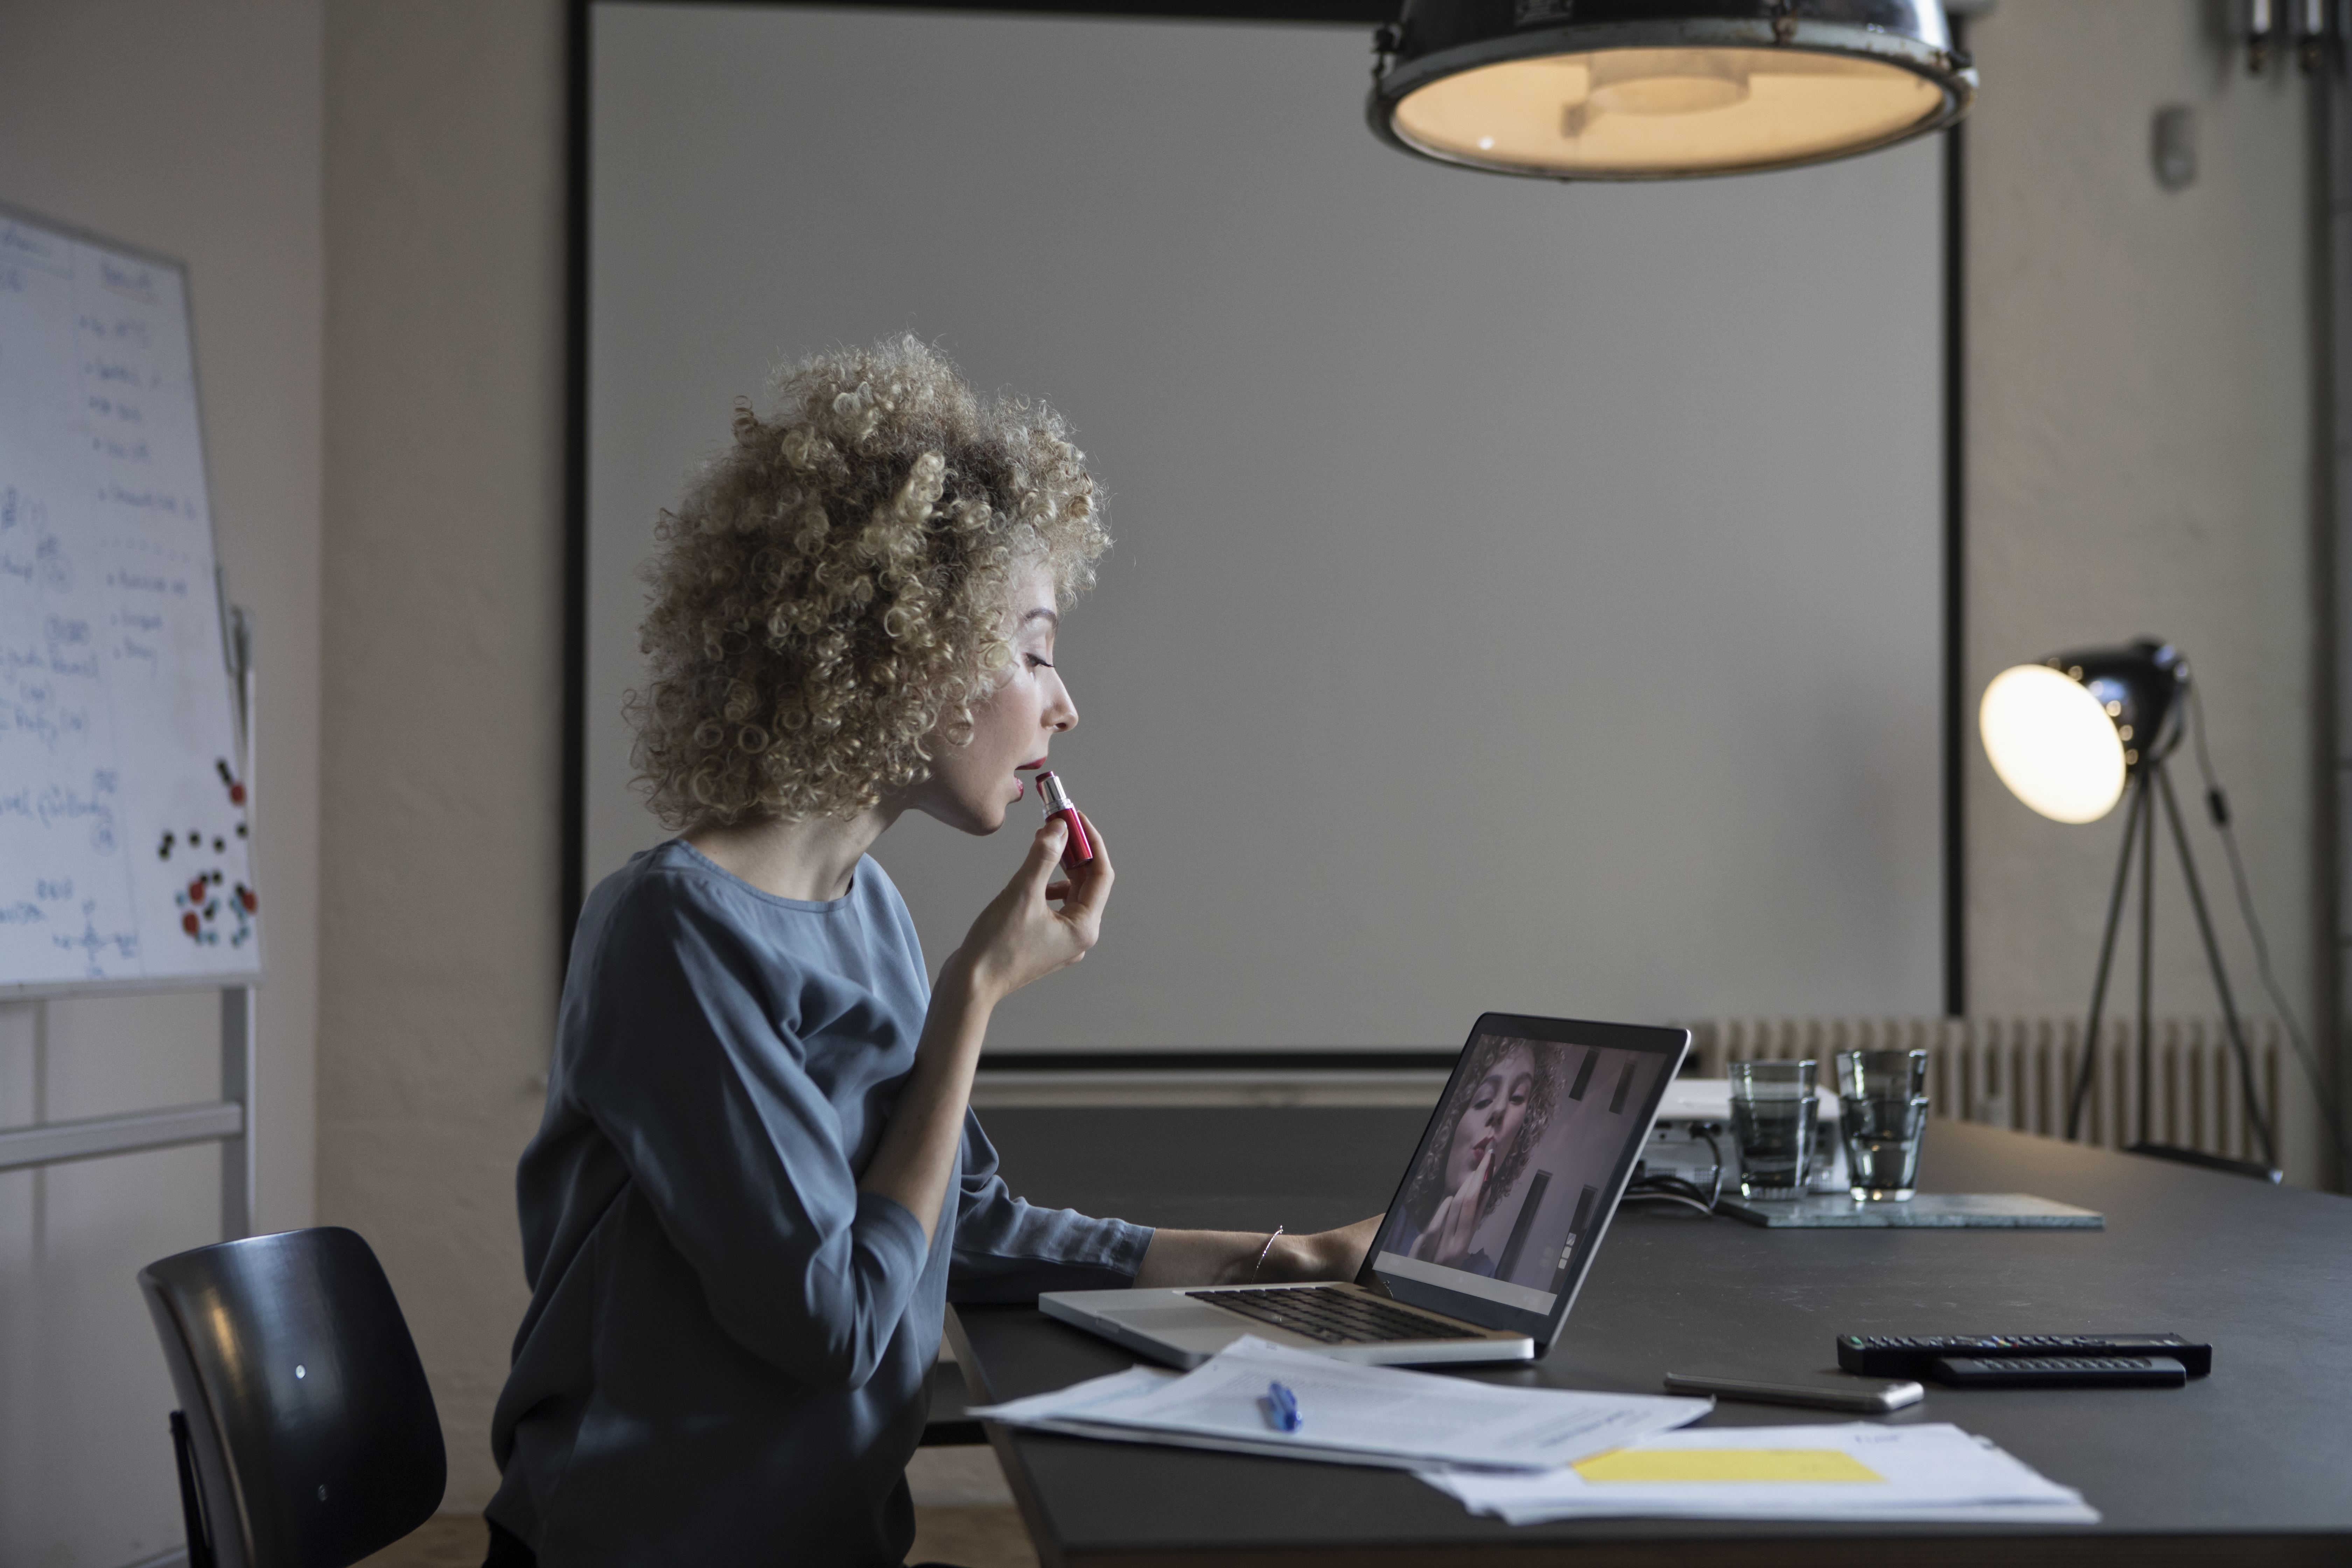 Woman in office applying make-up using laptop monitor as mirror